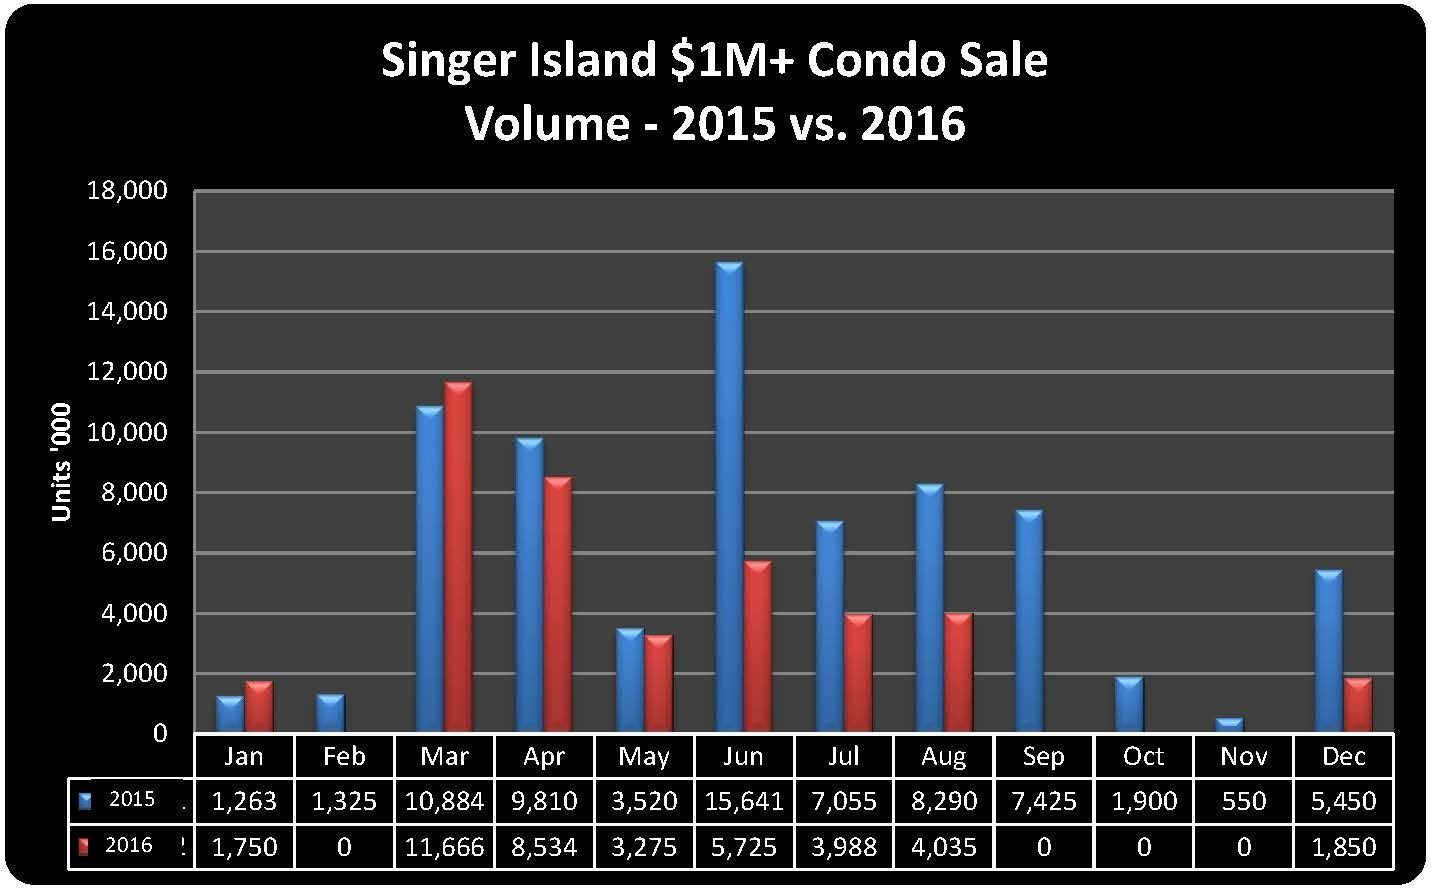 condo-1m-sales-2016-vs-2015-volume